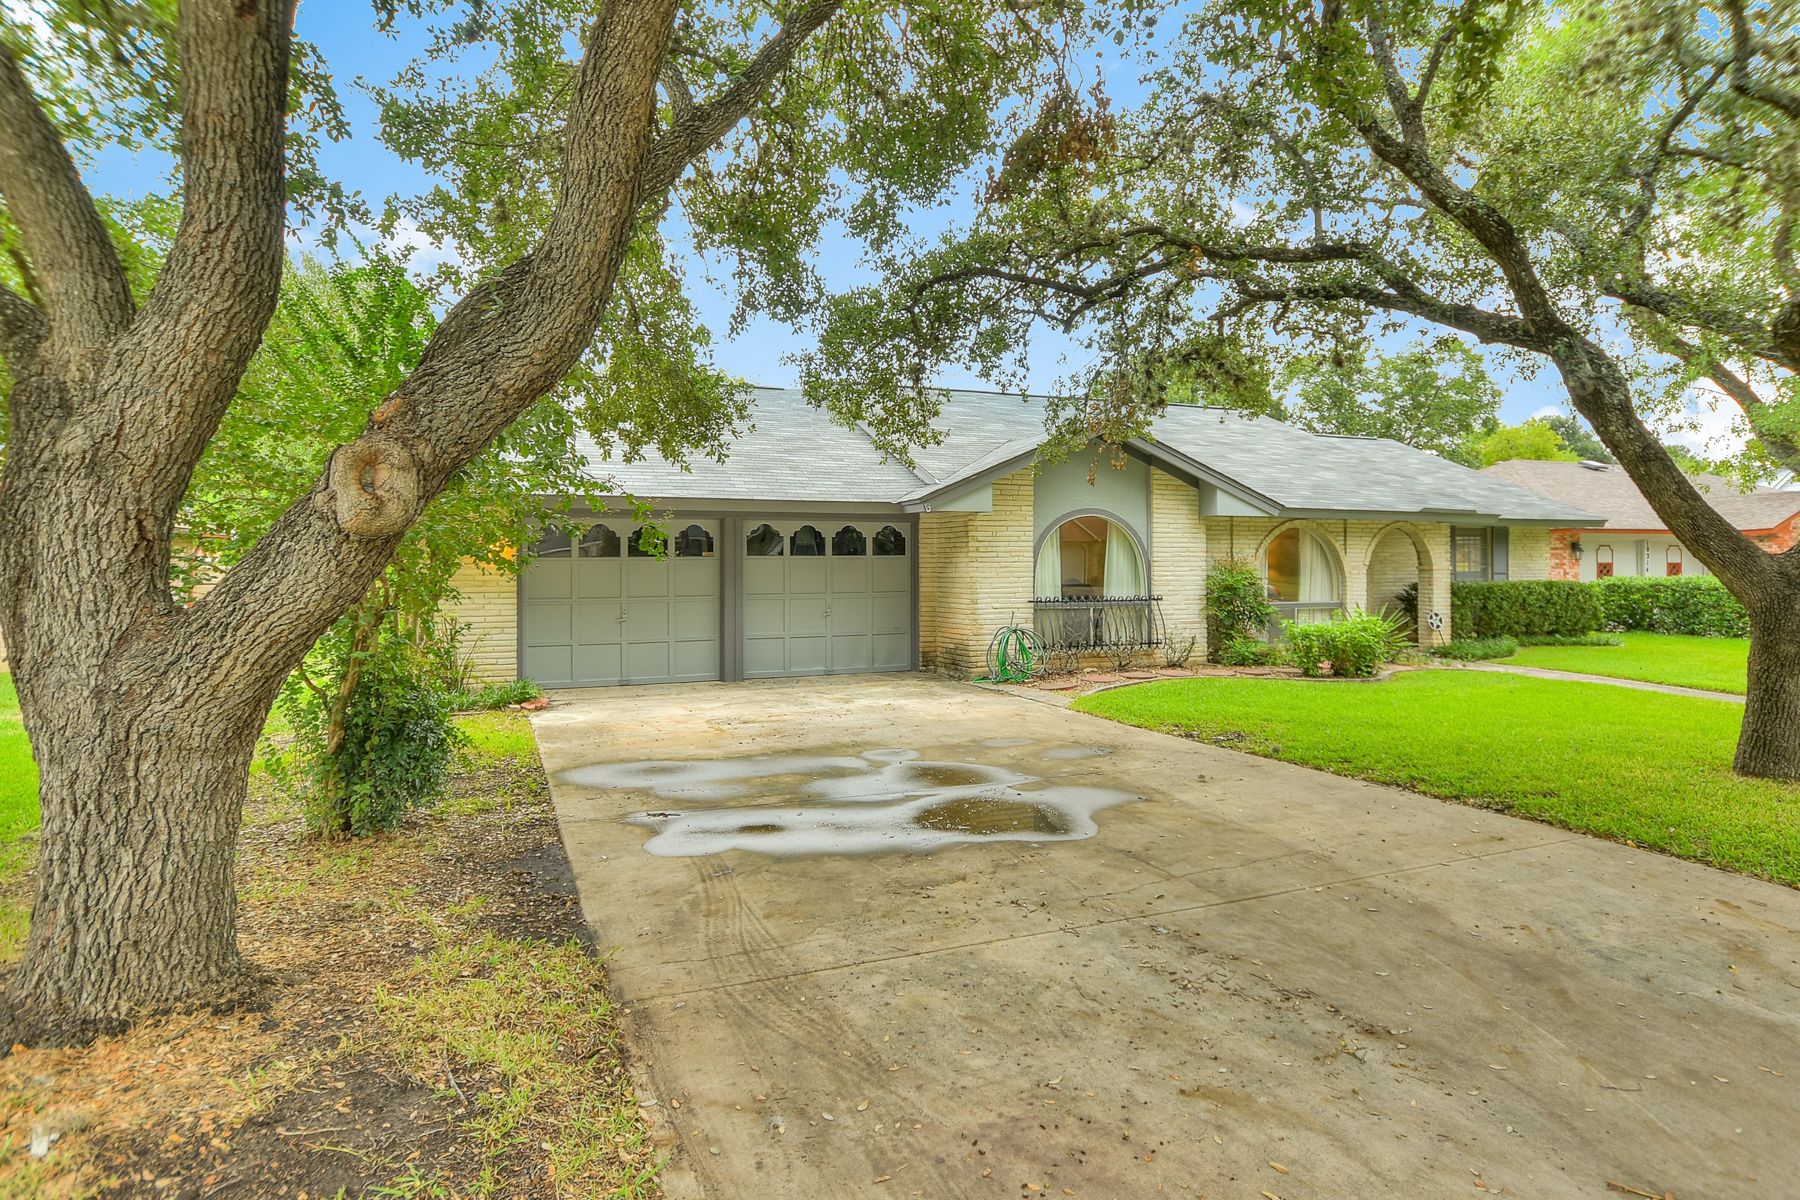 Additional photo for property listing at Lovely Home in Regency Place 10218 Severn Rd San Antonio, Texas 78217 United States